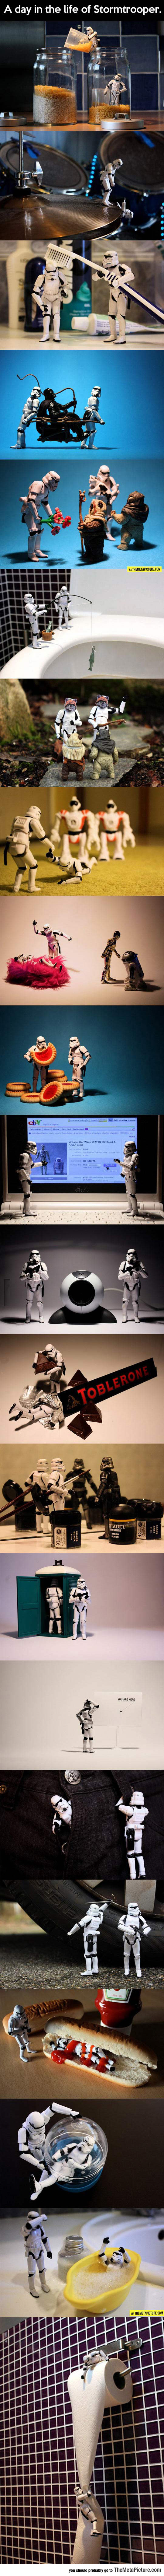 What A Stormtrooper Does On A Regular Day